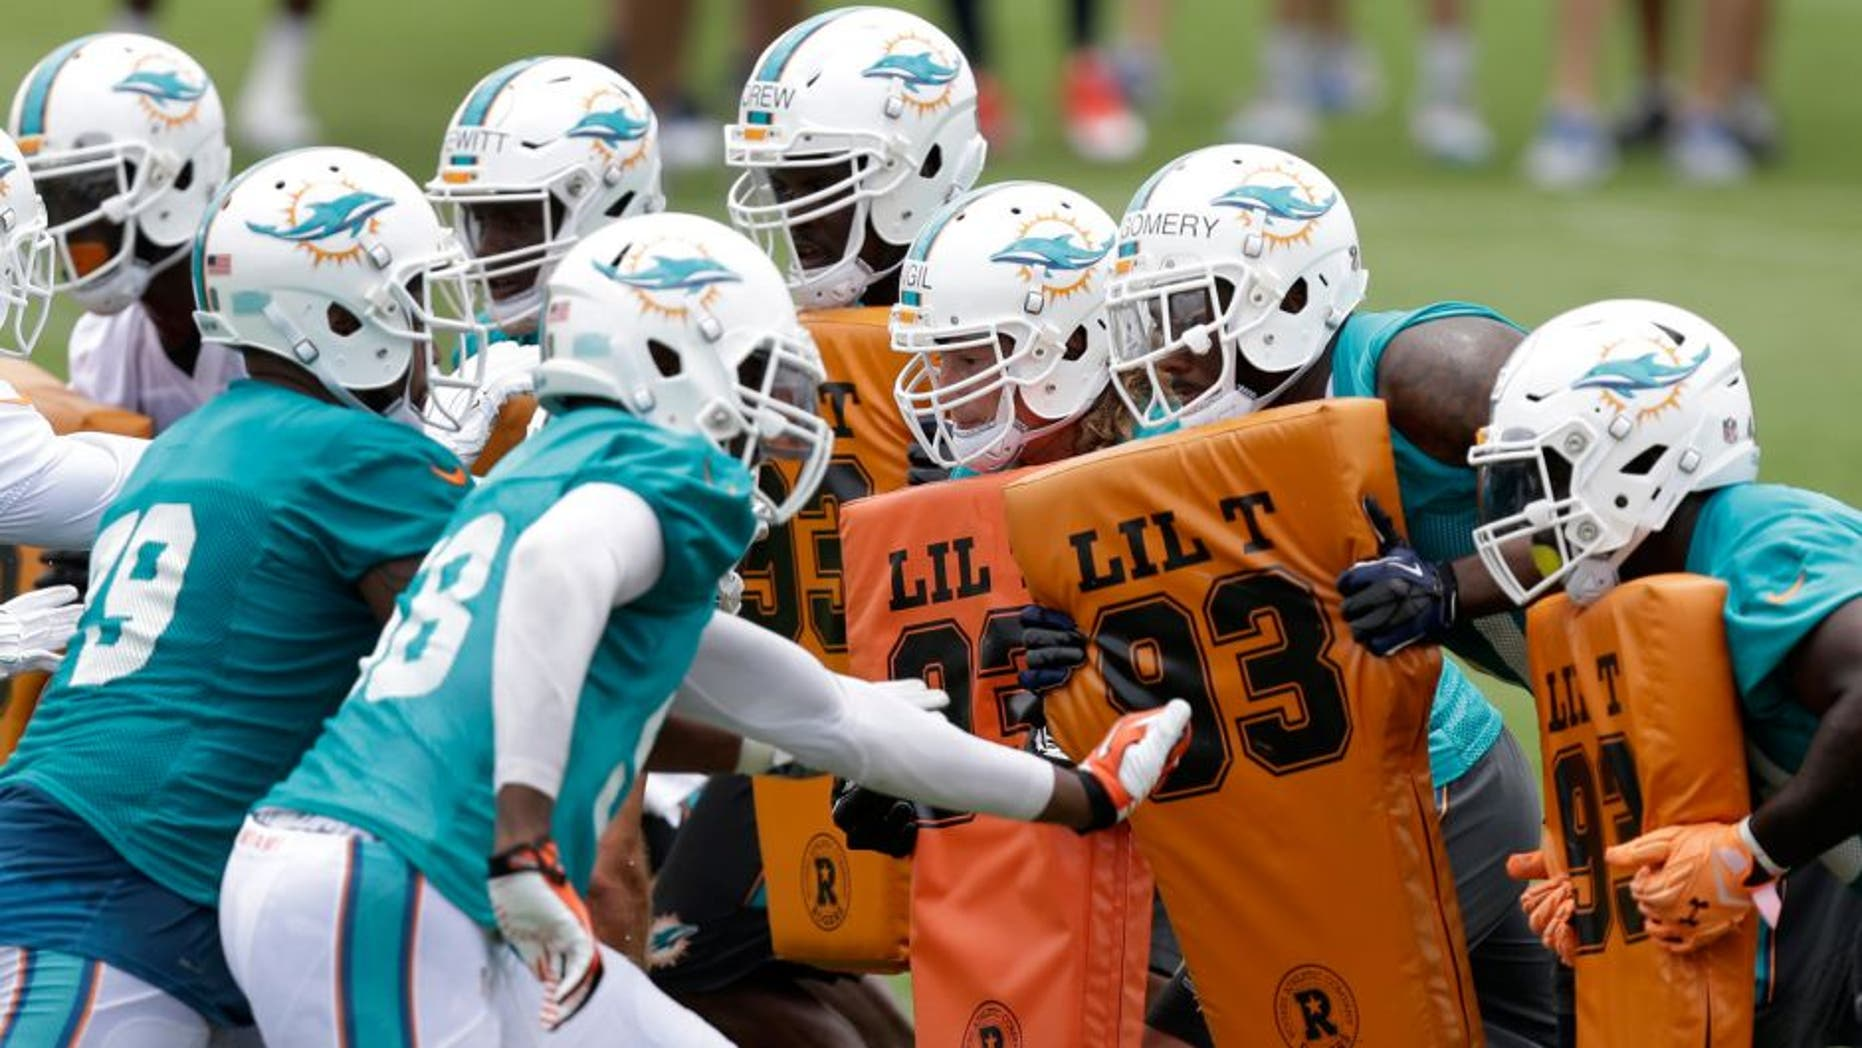 Miami Dolphins players participate in an NFL football organized team activity, Tuesday, May 26, 2015, at the Dolphins training facility in Davie, Fla. (AP Photo/Wilfredo Lee)